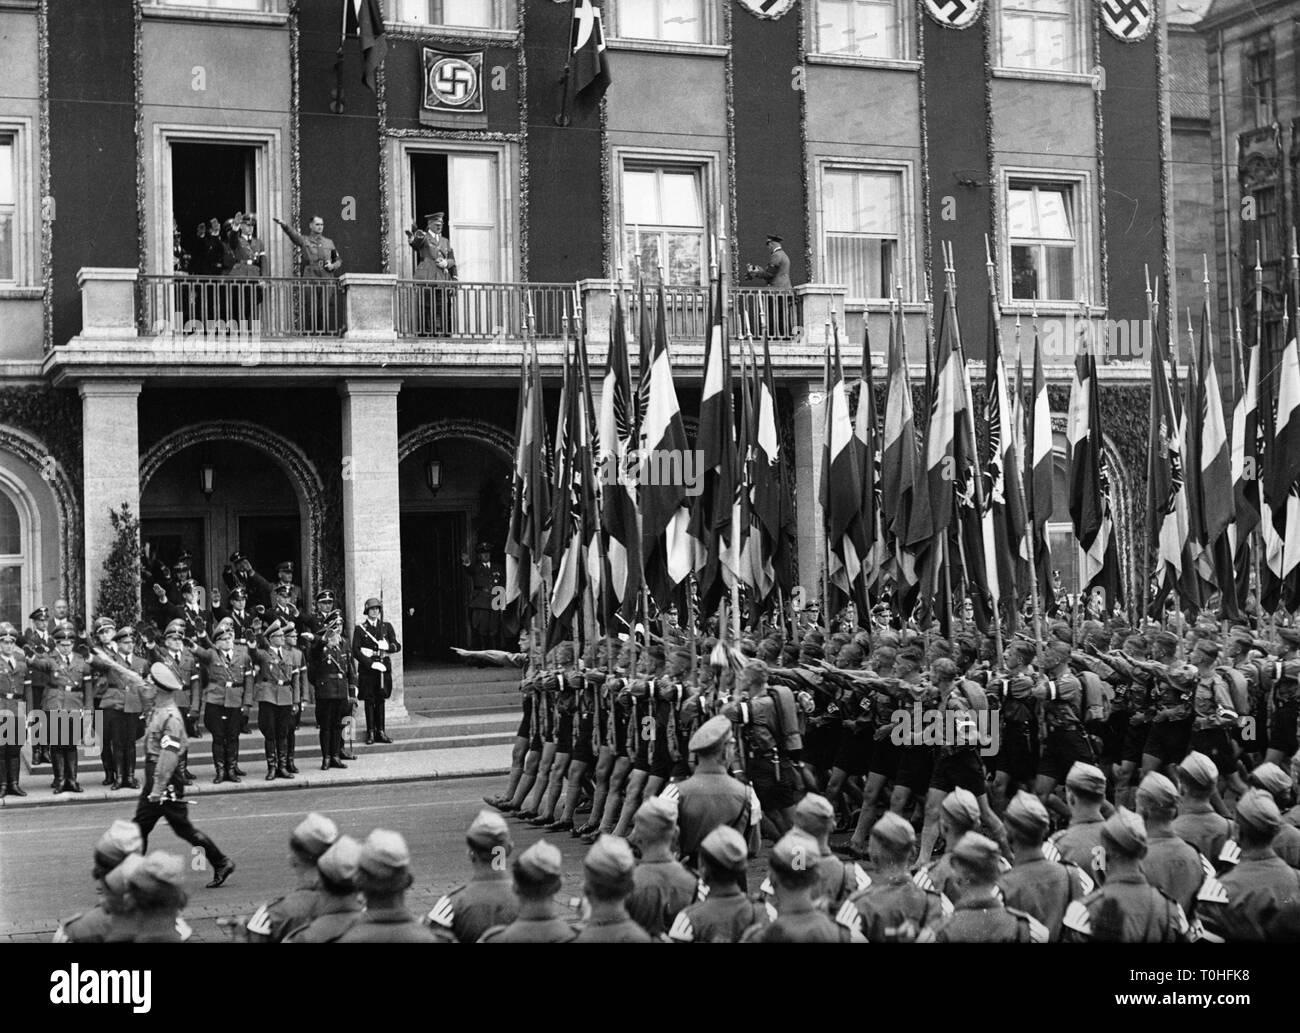 National Socialism, organisations, Hitler Youth (Hitler Youth), march-past of the Hitlerjugend at the 'Deutschen Hof', Nuremberg, Nuremberg Rally, 1930s, on the Balkon Adolf Hitler, Additional-Rights-Clearance-Info-Not-Available - Stock Image